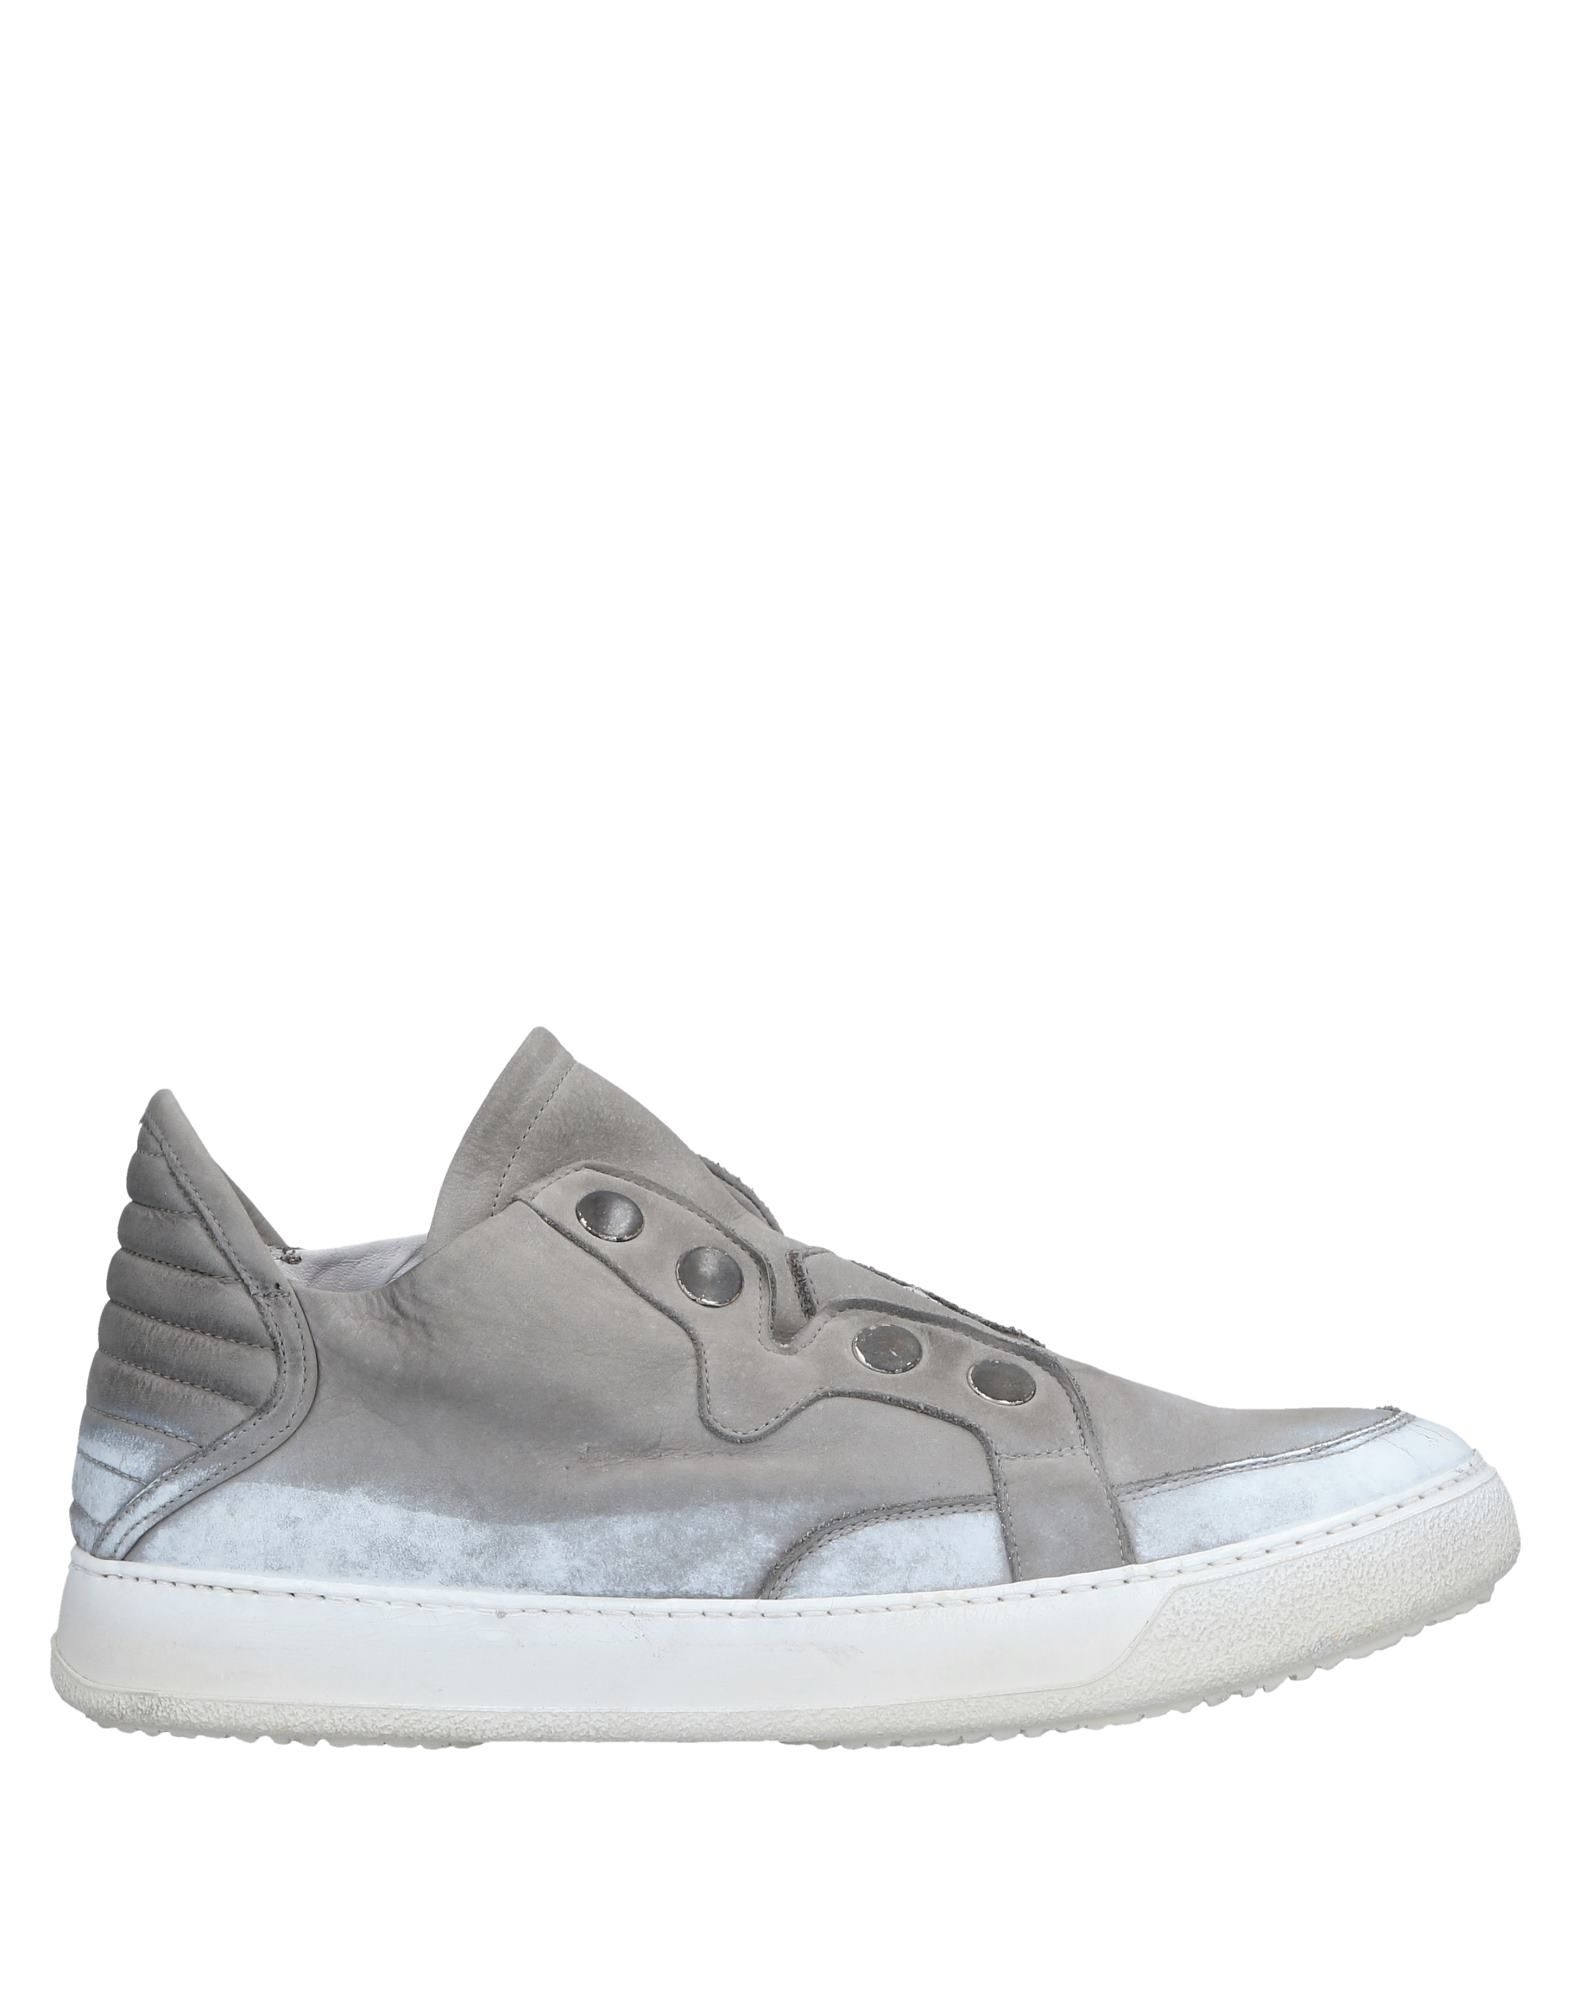 Bruno Bordese Sneakers - - - Men Bruno Bordese Sneakers online on  Canada - 11535604LM 7ccb16